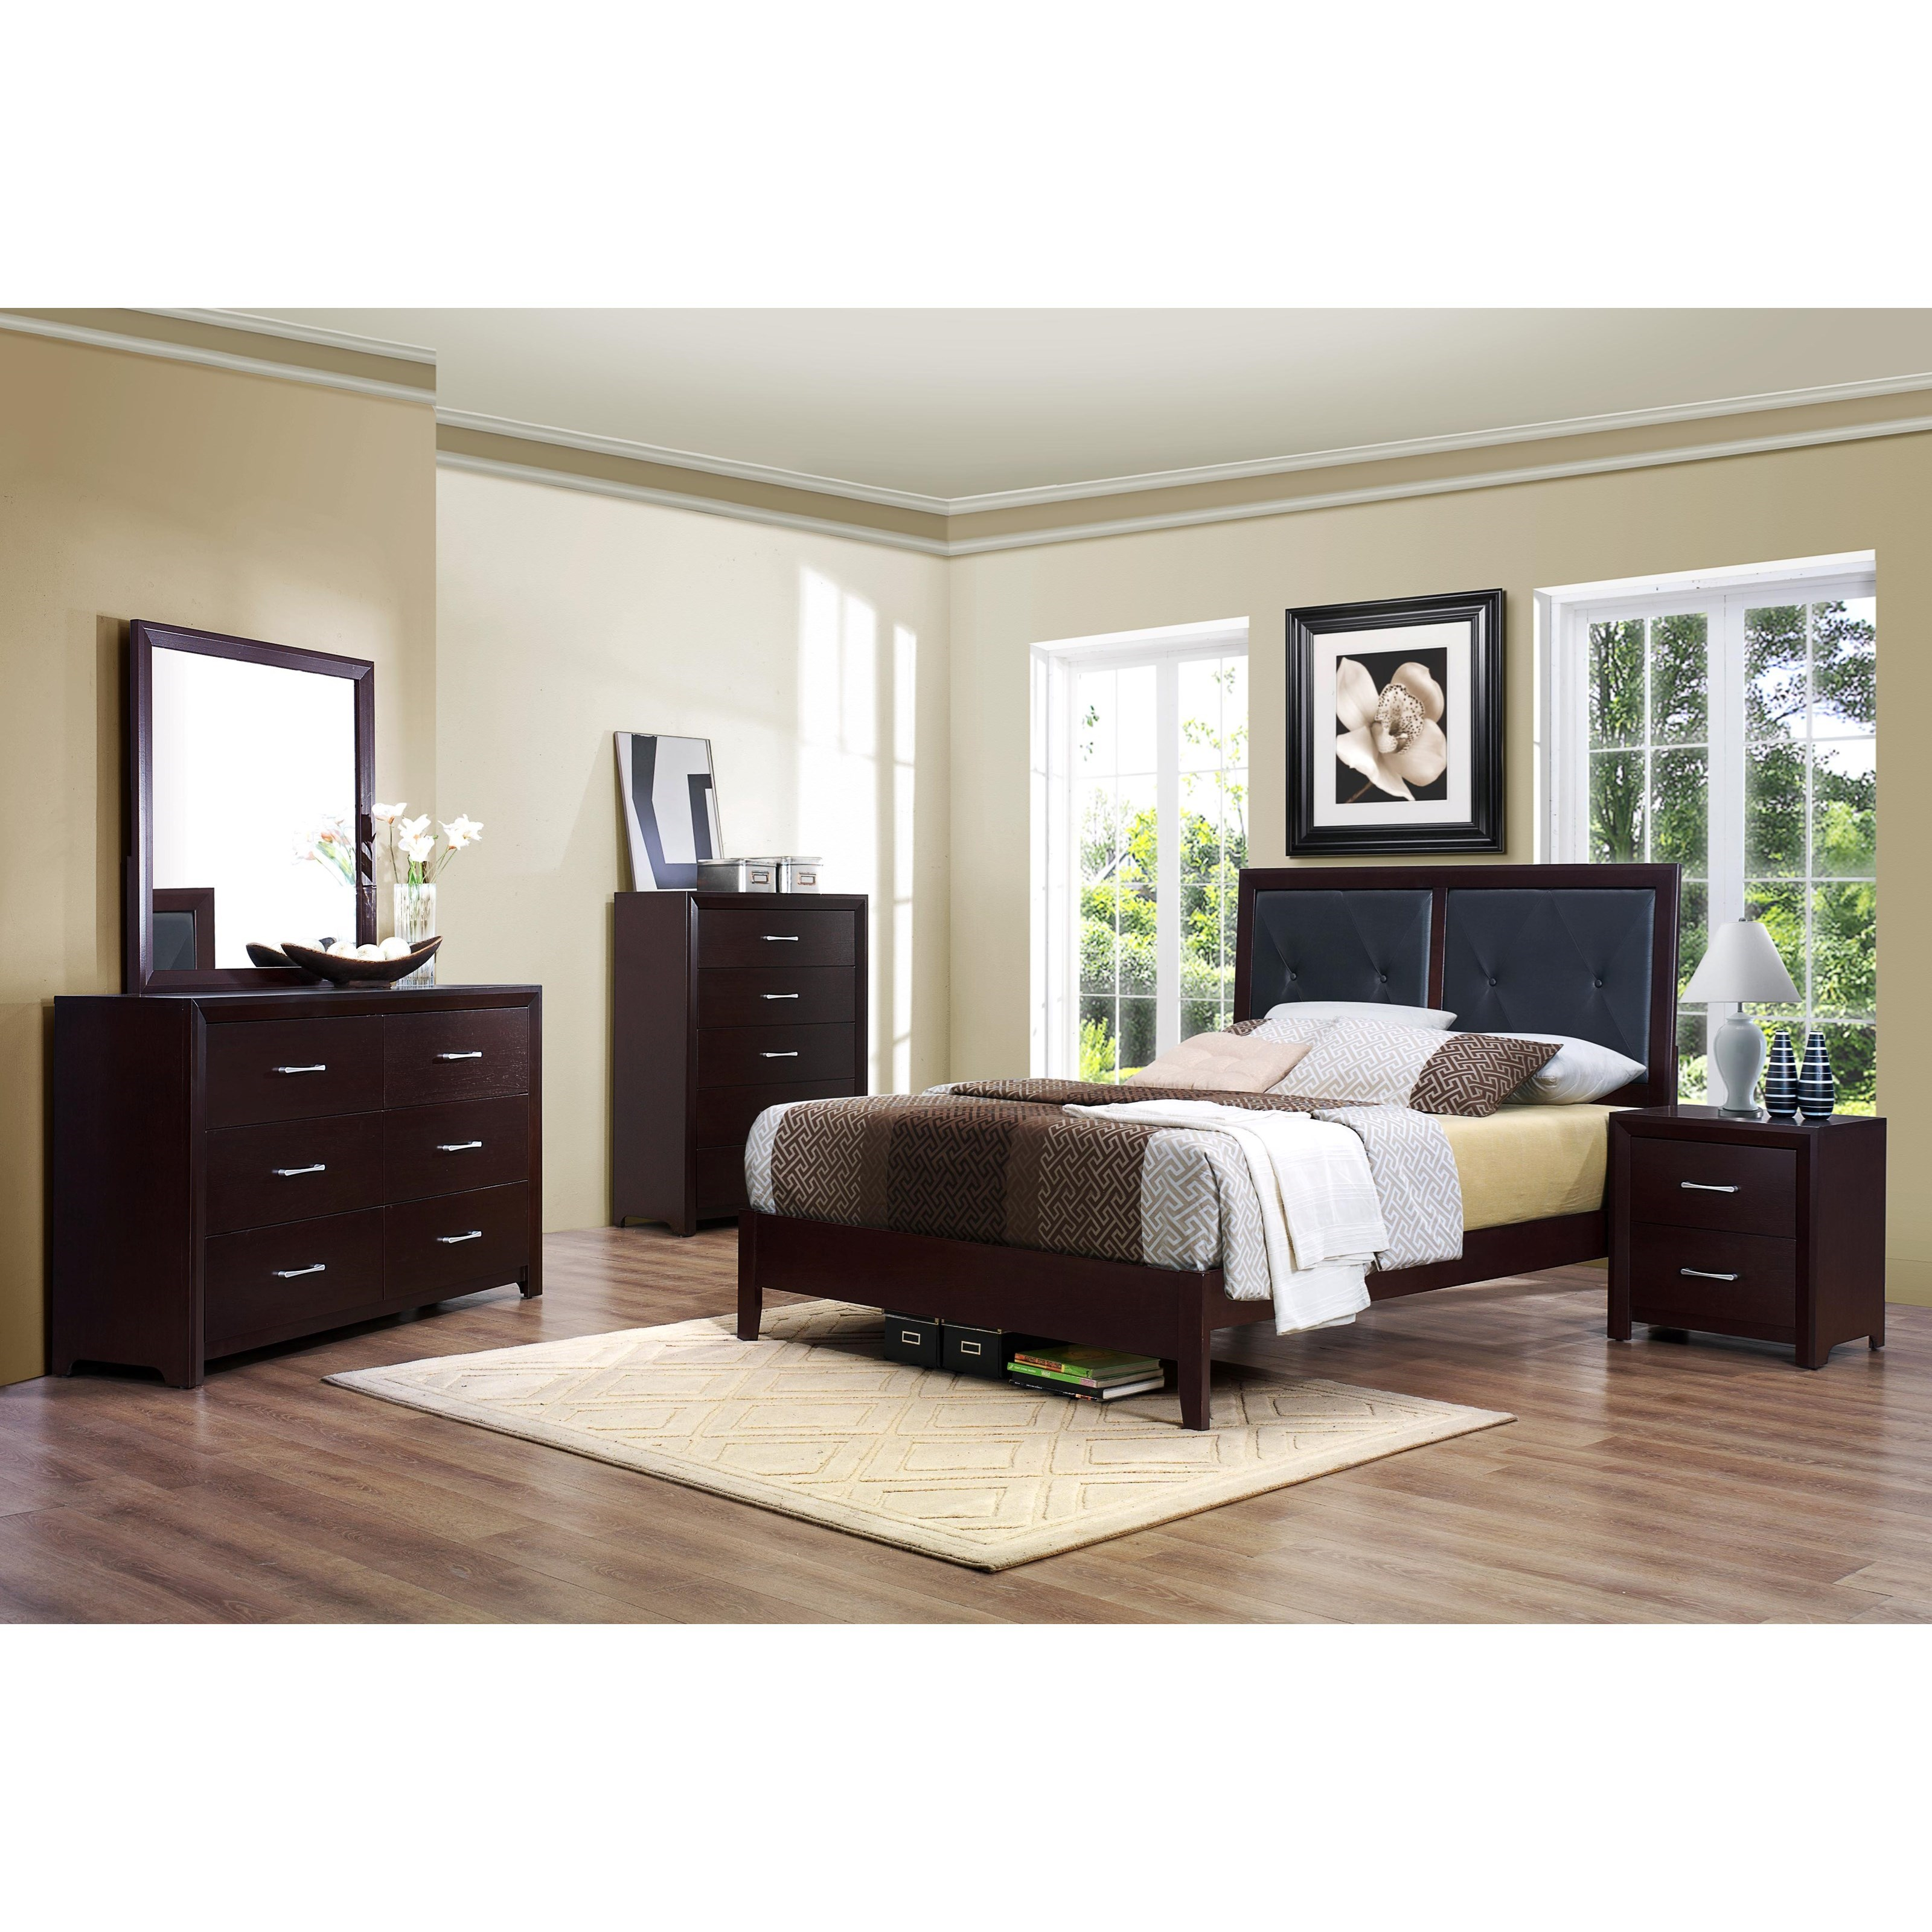 Homelegance Edina Queen Bedroom Group without Chest - Item Number: 2145 Q Bedroom Group 2